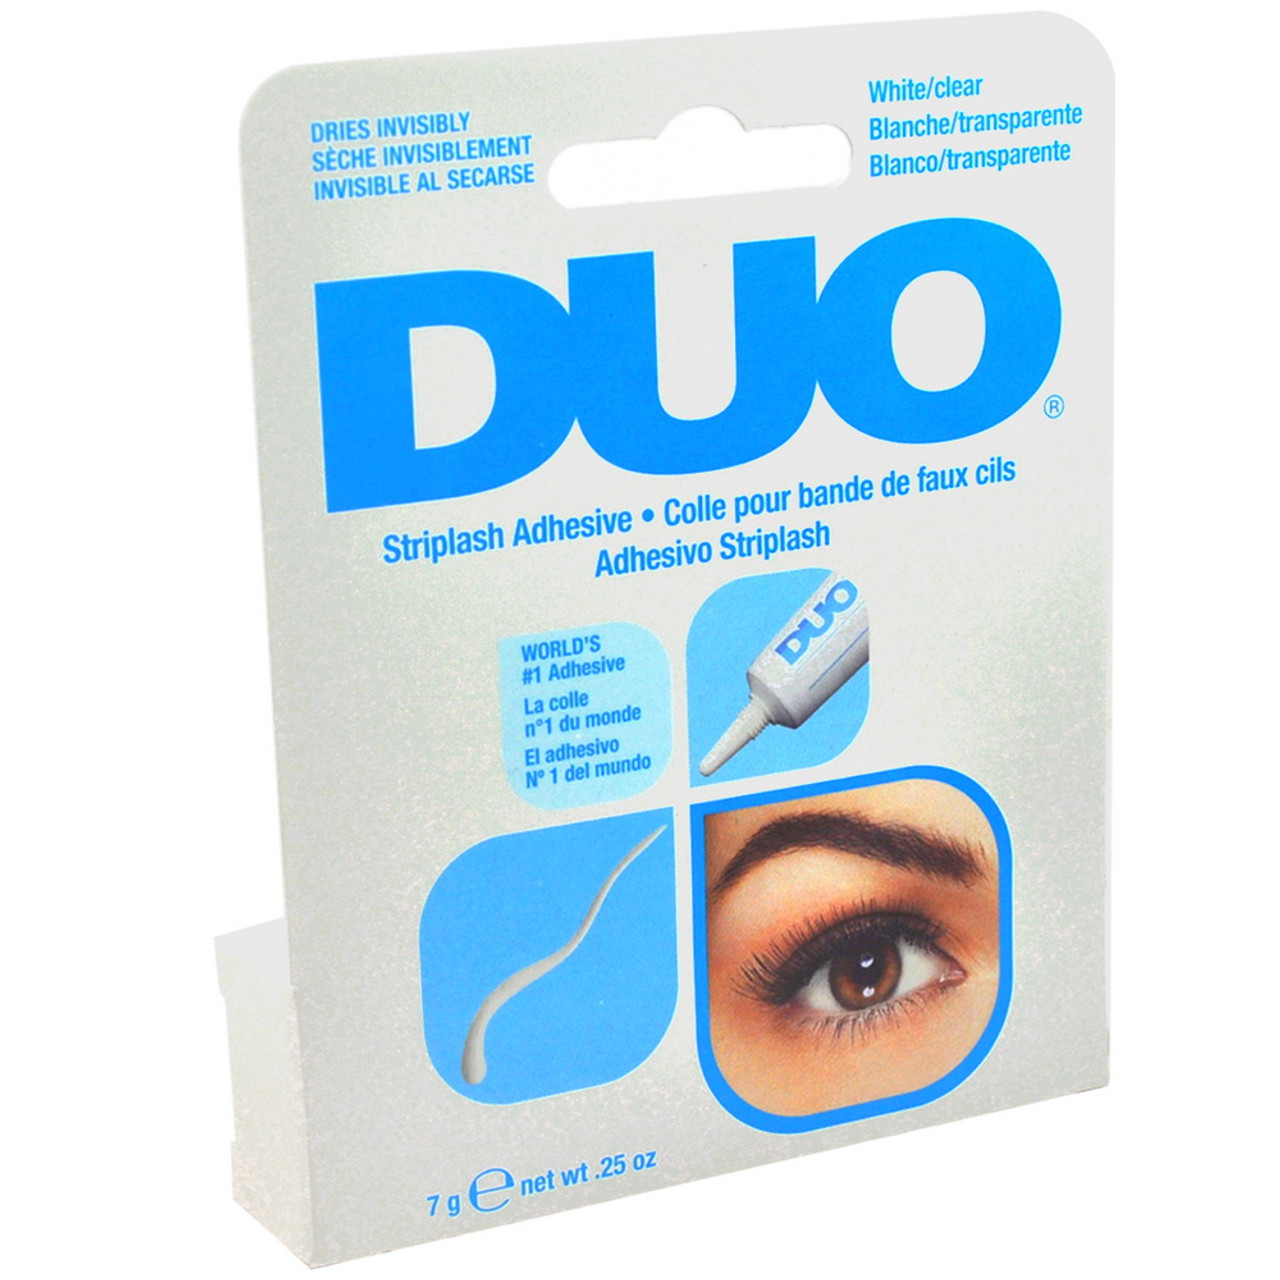 df624112b5f Check fit: Align band with natural lash line. Thim excess if necessary.  Apply